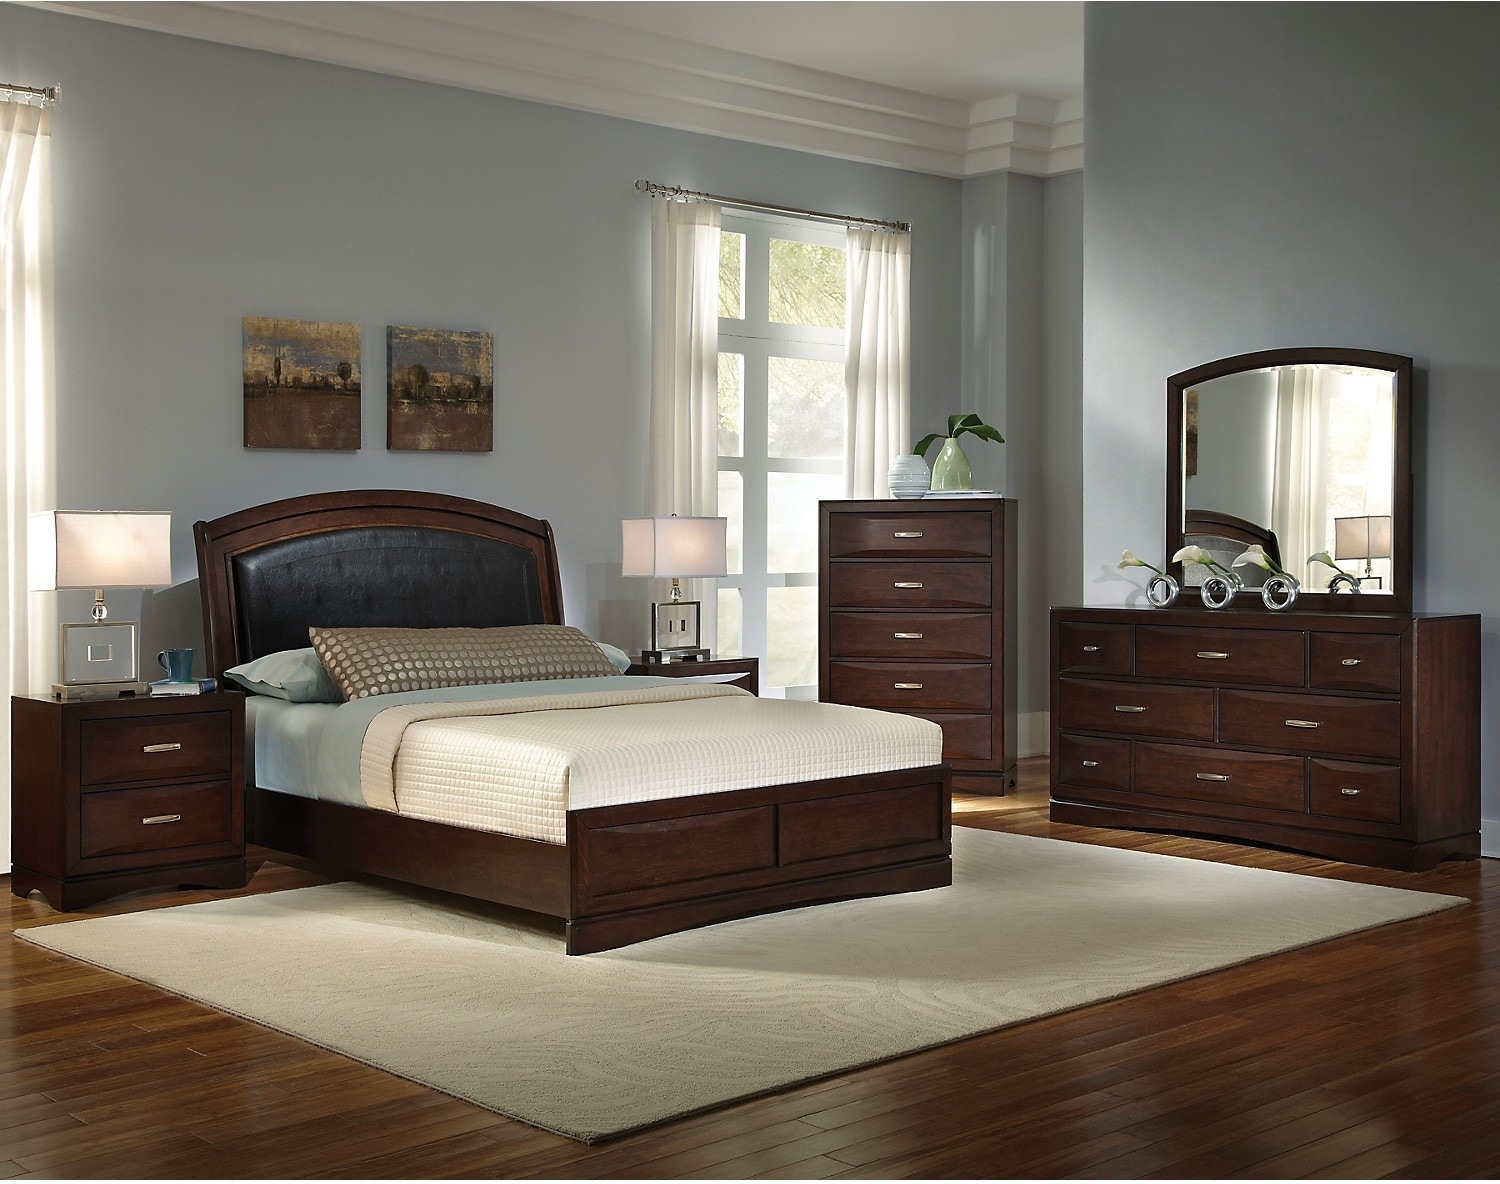 Classic Bedroom Decorating Ideas Beverly 8 Piece King Bedroom Set The Brick